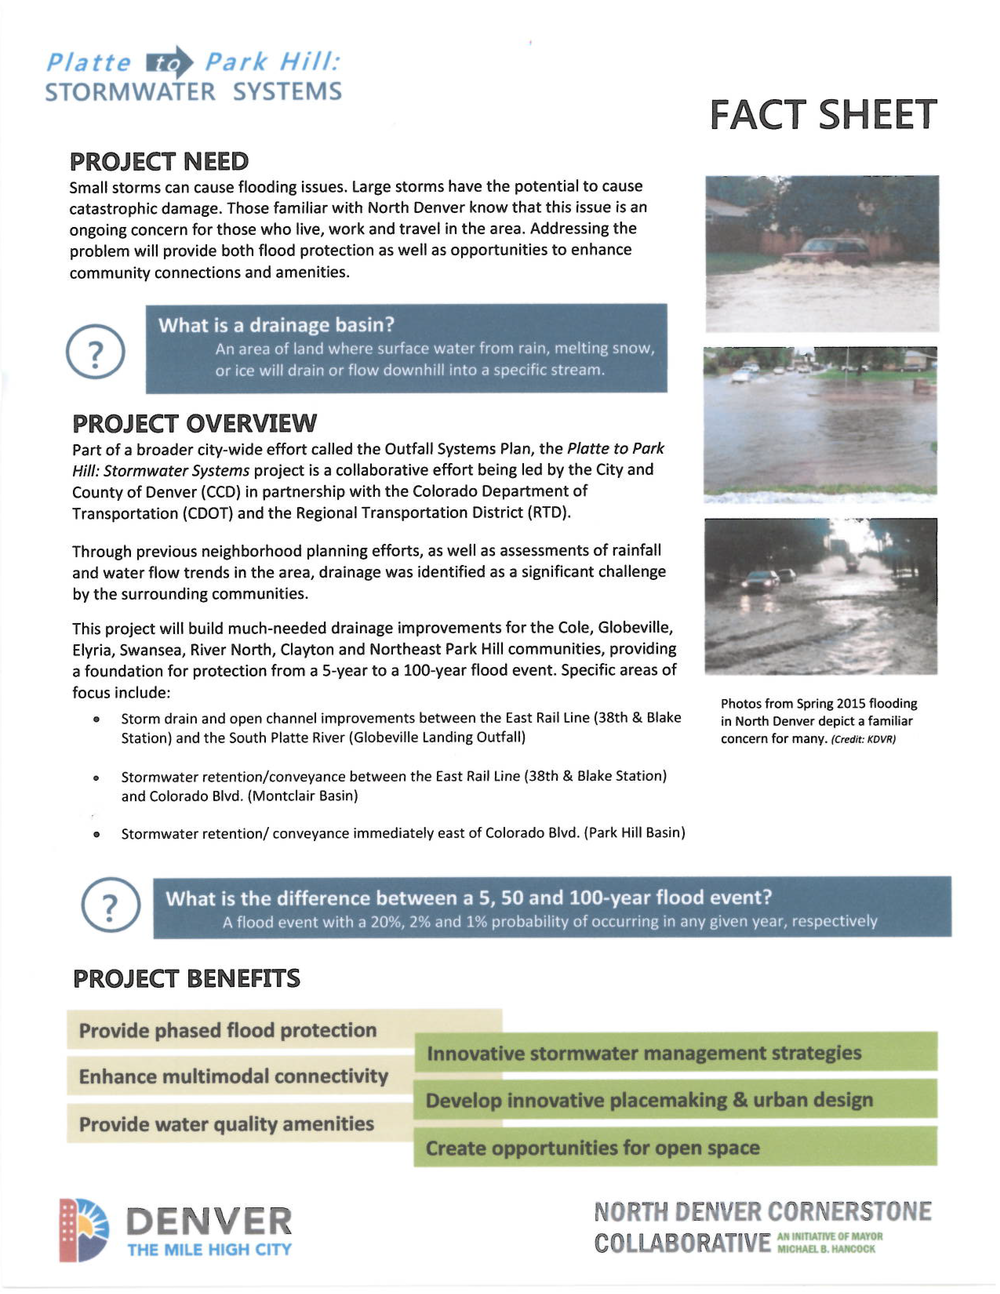 Stormwater Systems Fact Sheet